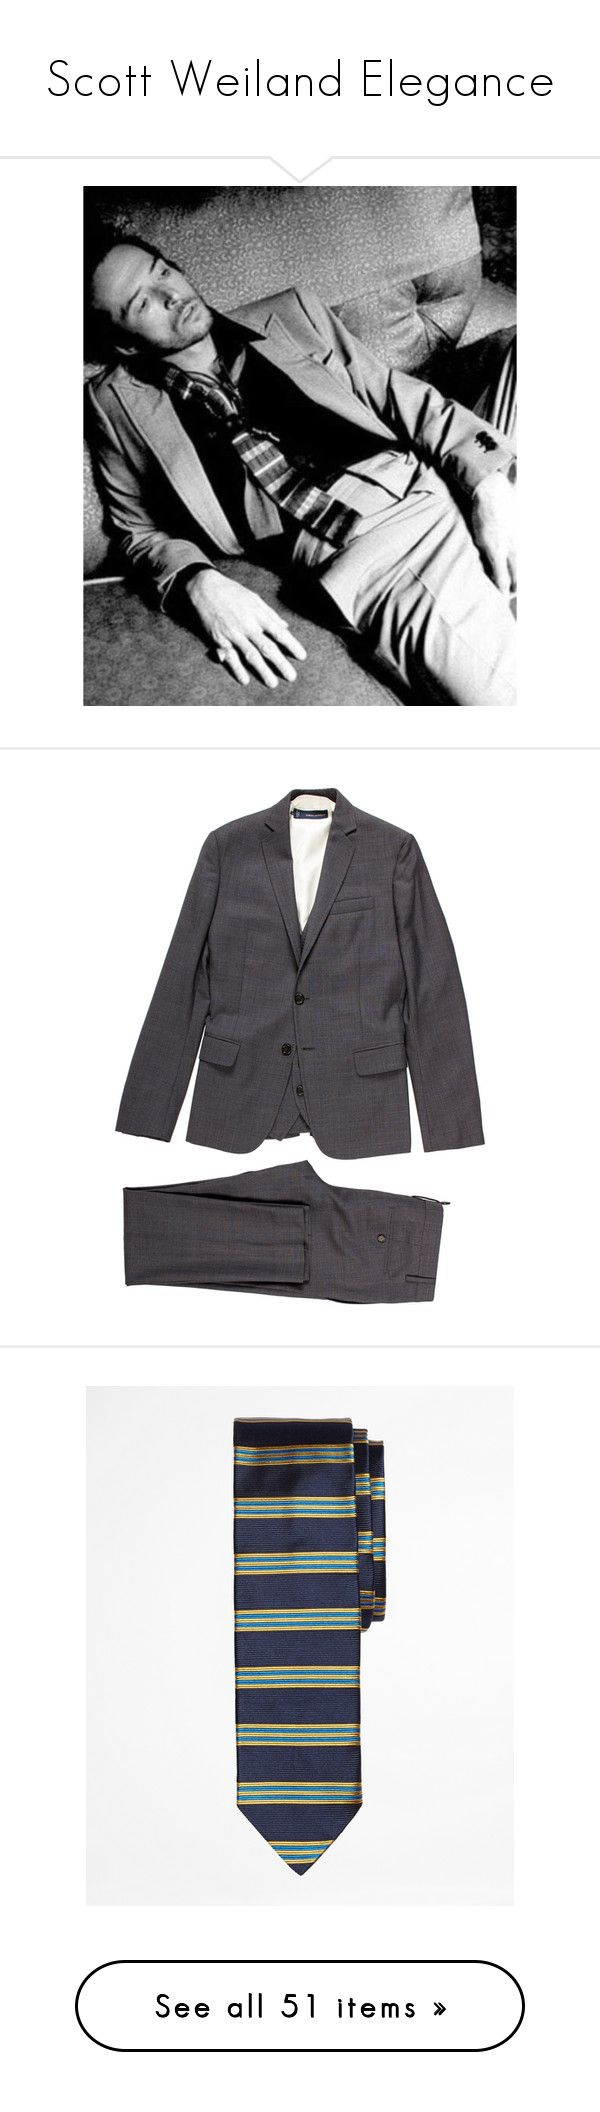 """""""Scott Weiland Elegance"""" by lacerta ❤ liked on Polyvore featuring rock, stone, dandy, men's fashion, men's clothing, men's suits, grey, mens grey 3 piece suit, mens grey suits and mens suits"""